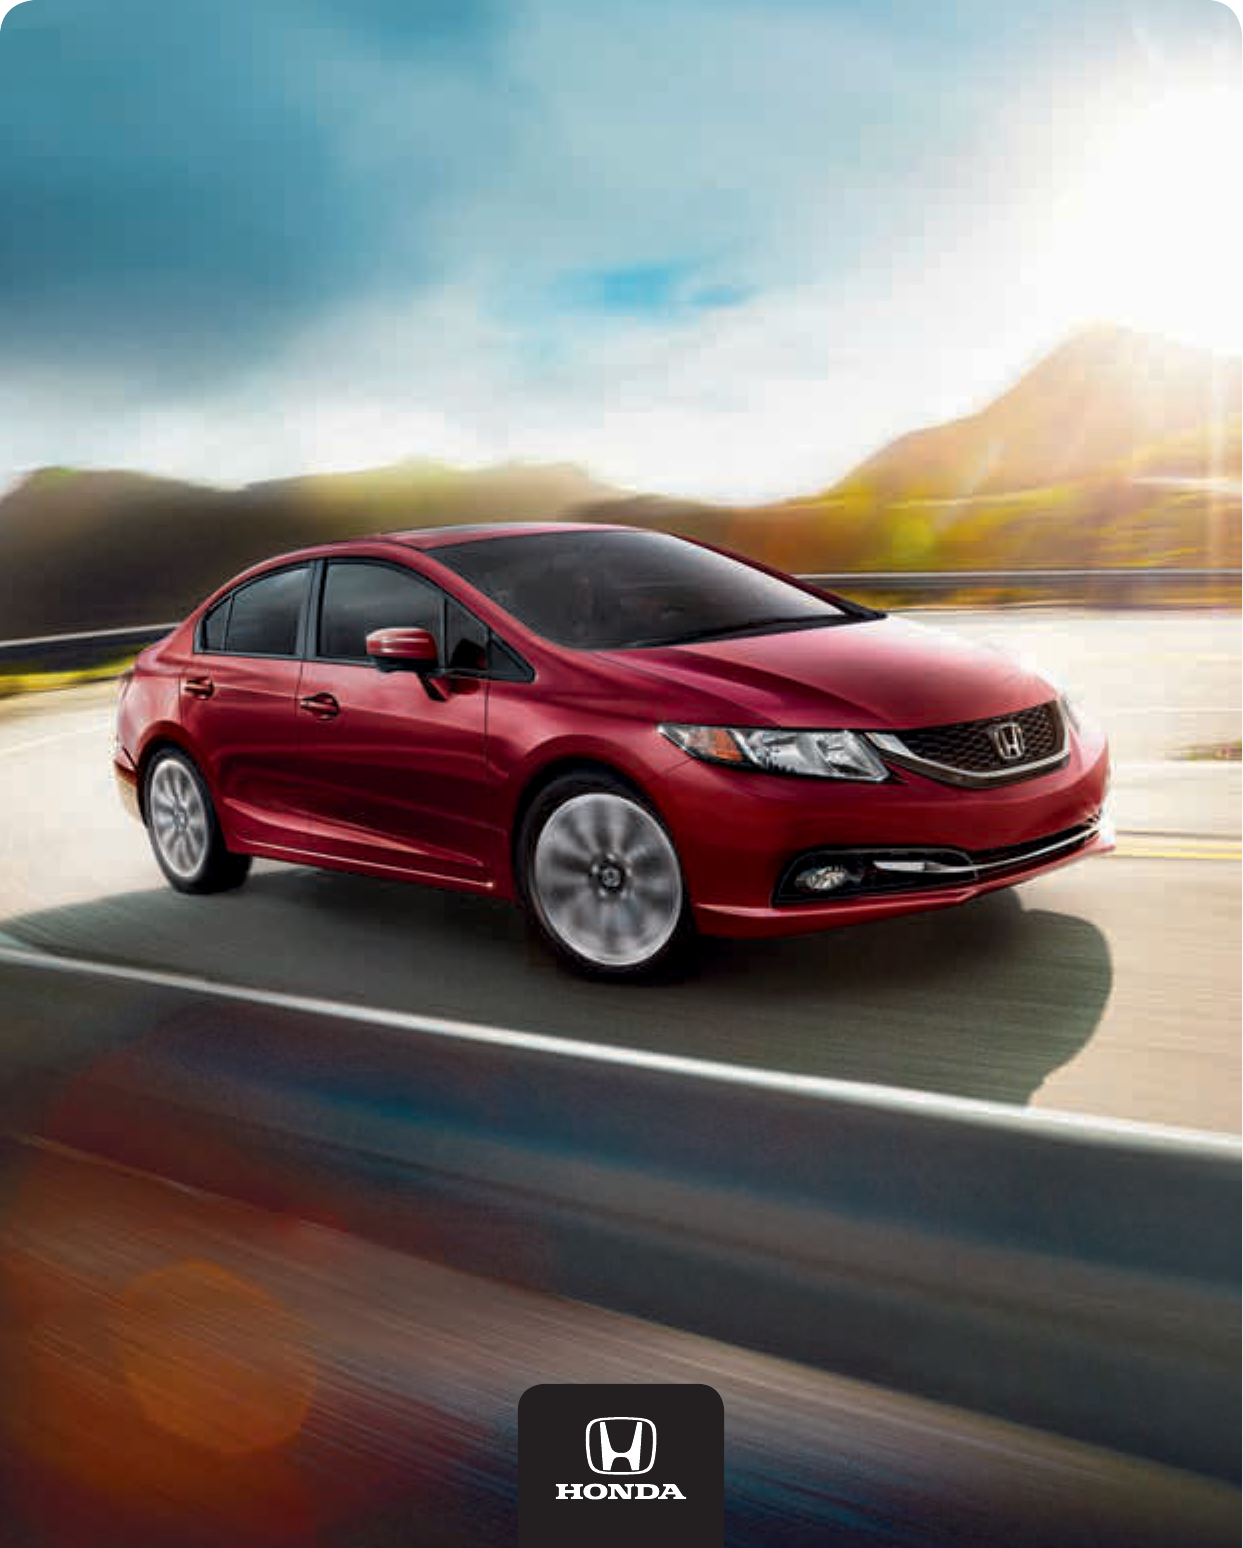 See our other Honda Civic Manuals: